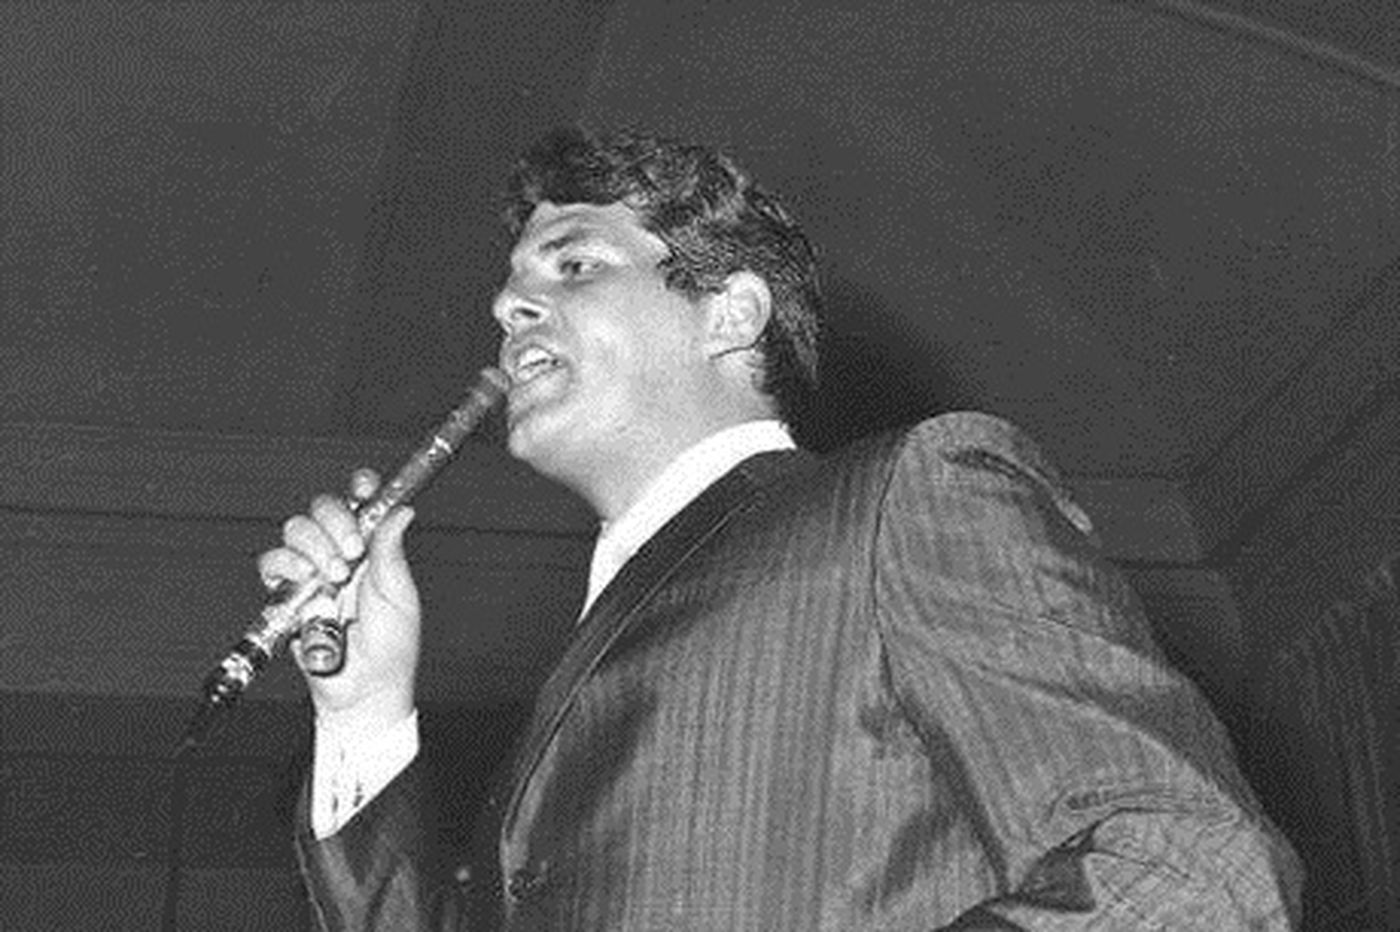 Len Barry, 1960s rock 'n roll recording star and lead voice of the Dovells, dies at 78